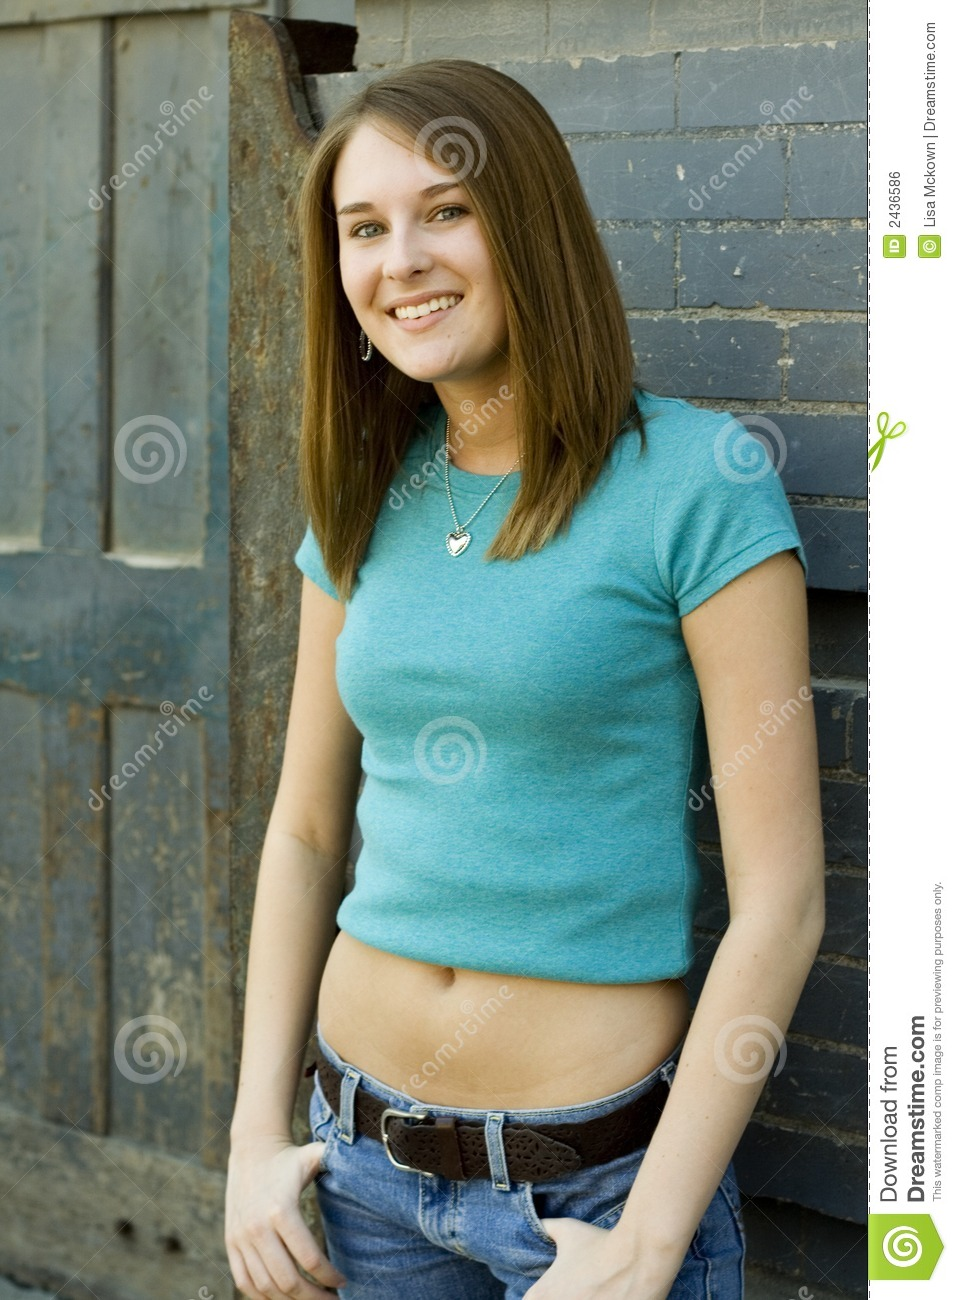 Teen Fashion Model Stock Photo. Image Of Model, Caucasian